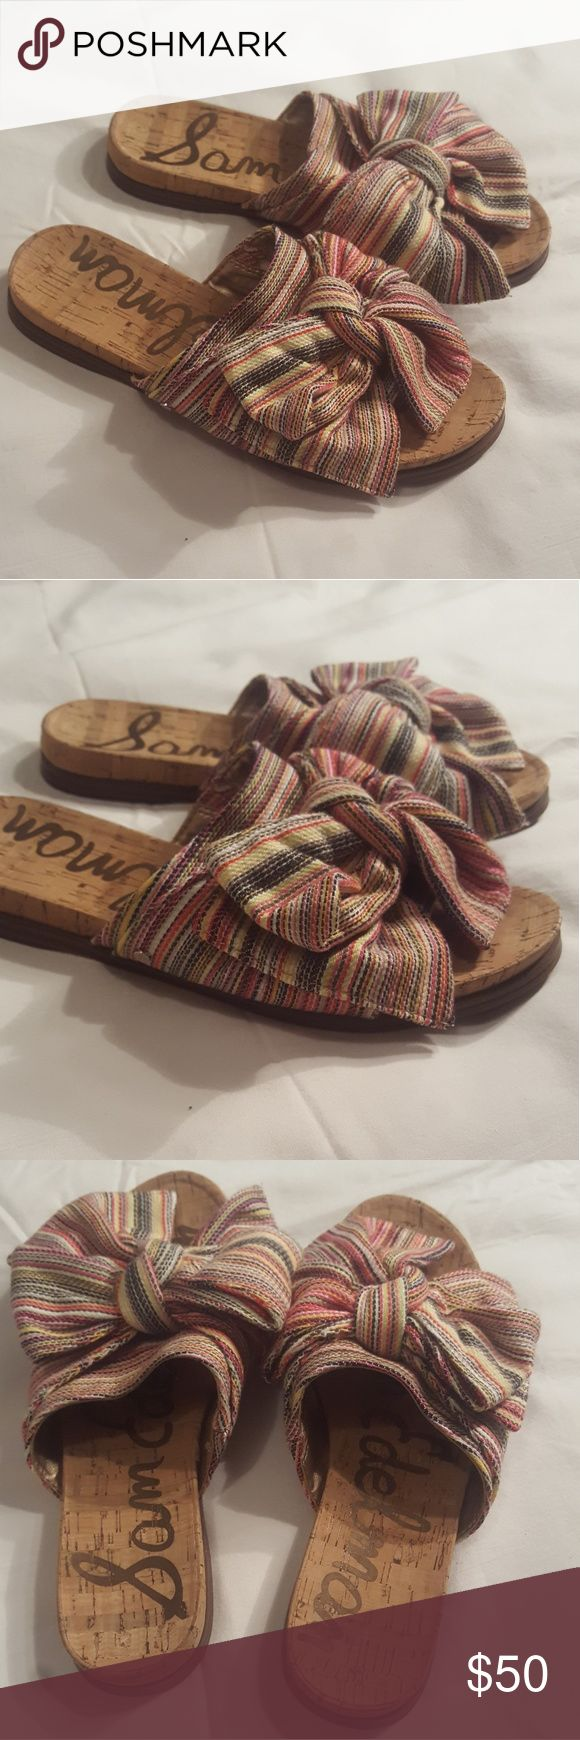 Sam Edleman Henna Striped Bow Slides Only worn once! Pics reflect this..! See photos! Feel free to message me with any questions and check out my other items!👚👜🛍👗👠 Sam Edelman Shoes Sandals